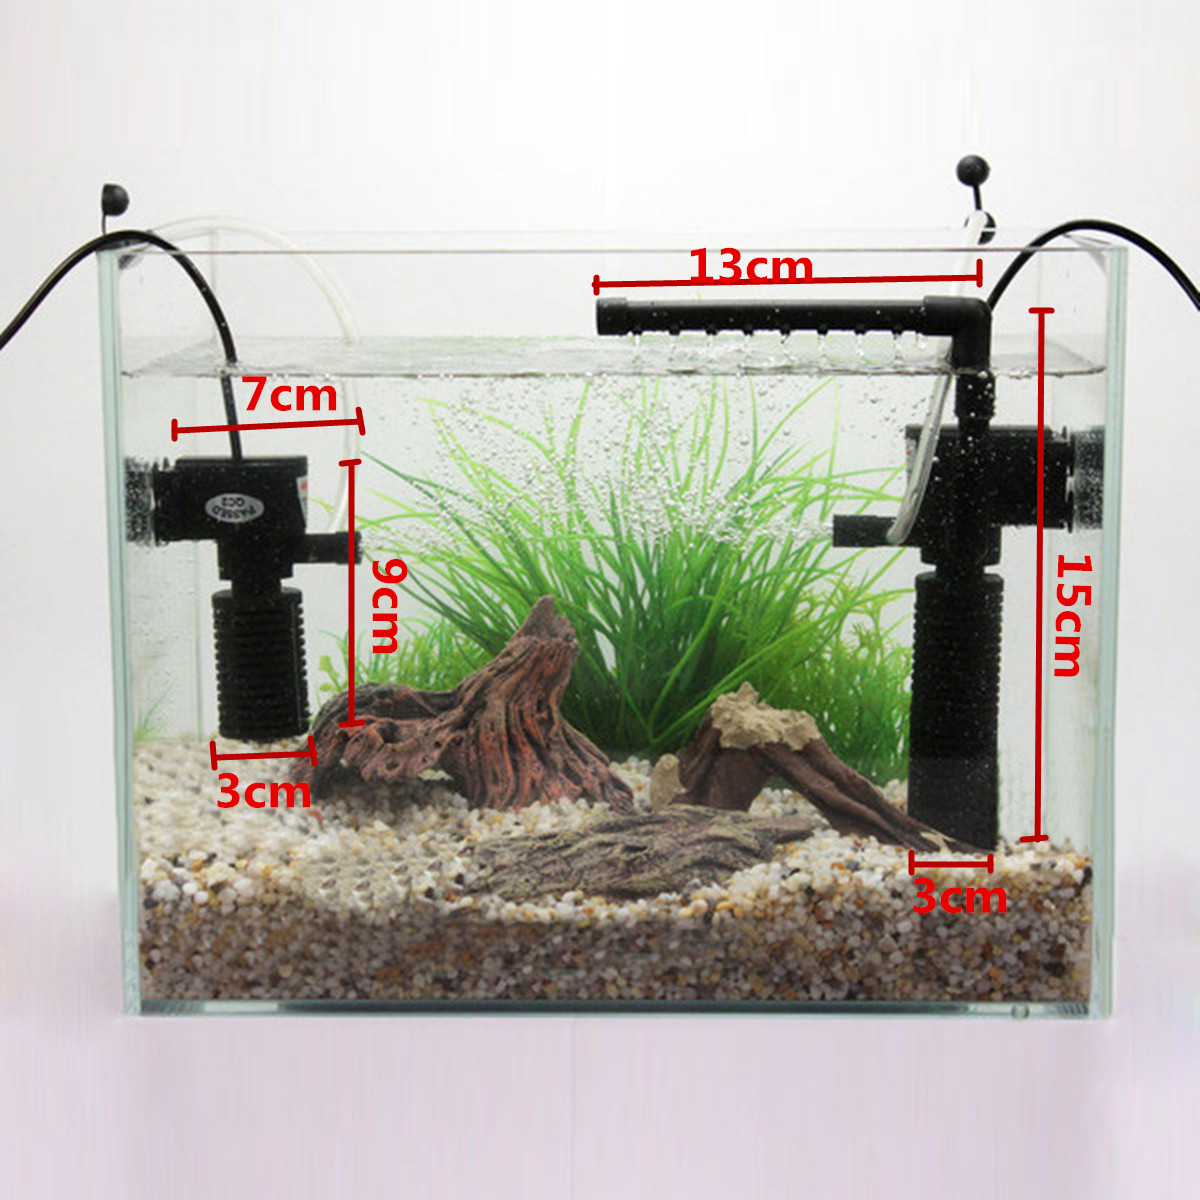 Ultra Silent Aquarium Submersible Oxygen Pump Fish Tank Water Internal Filter Circulating Rainfall